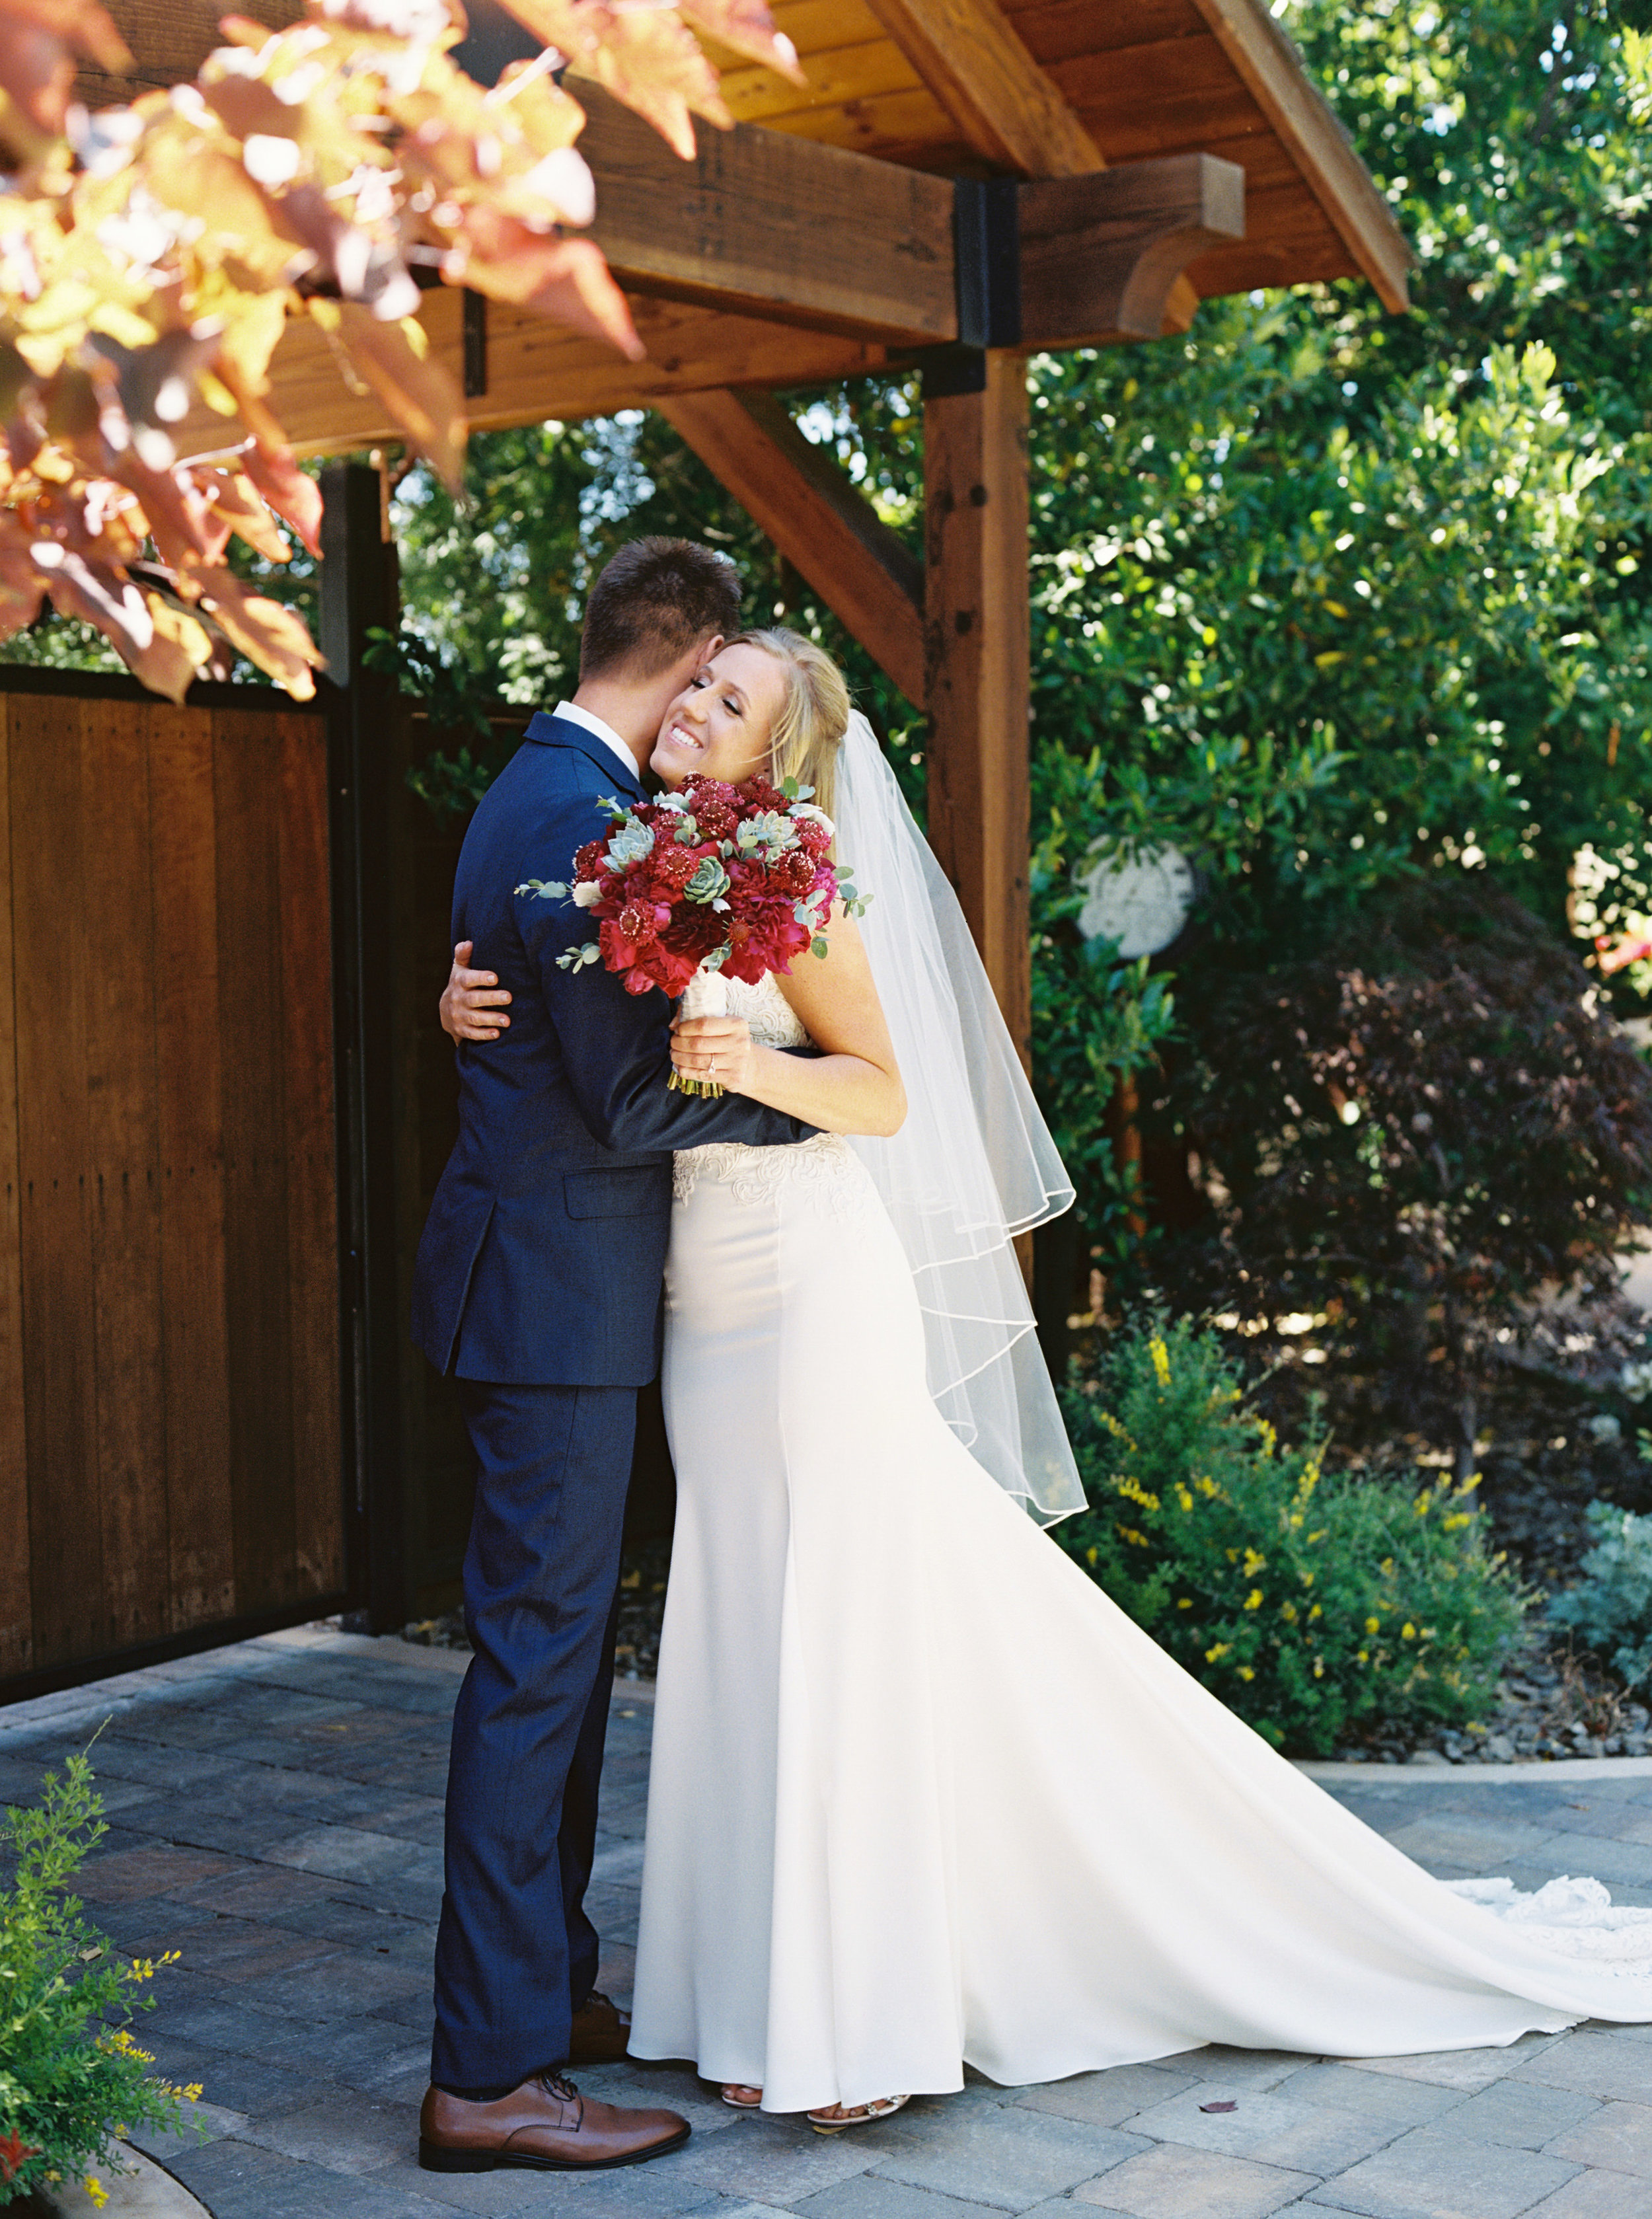 Crooked-vine-winery-wedding-in-livermore-california-54.jpg